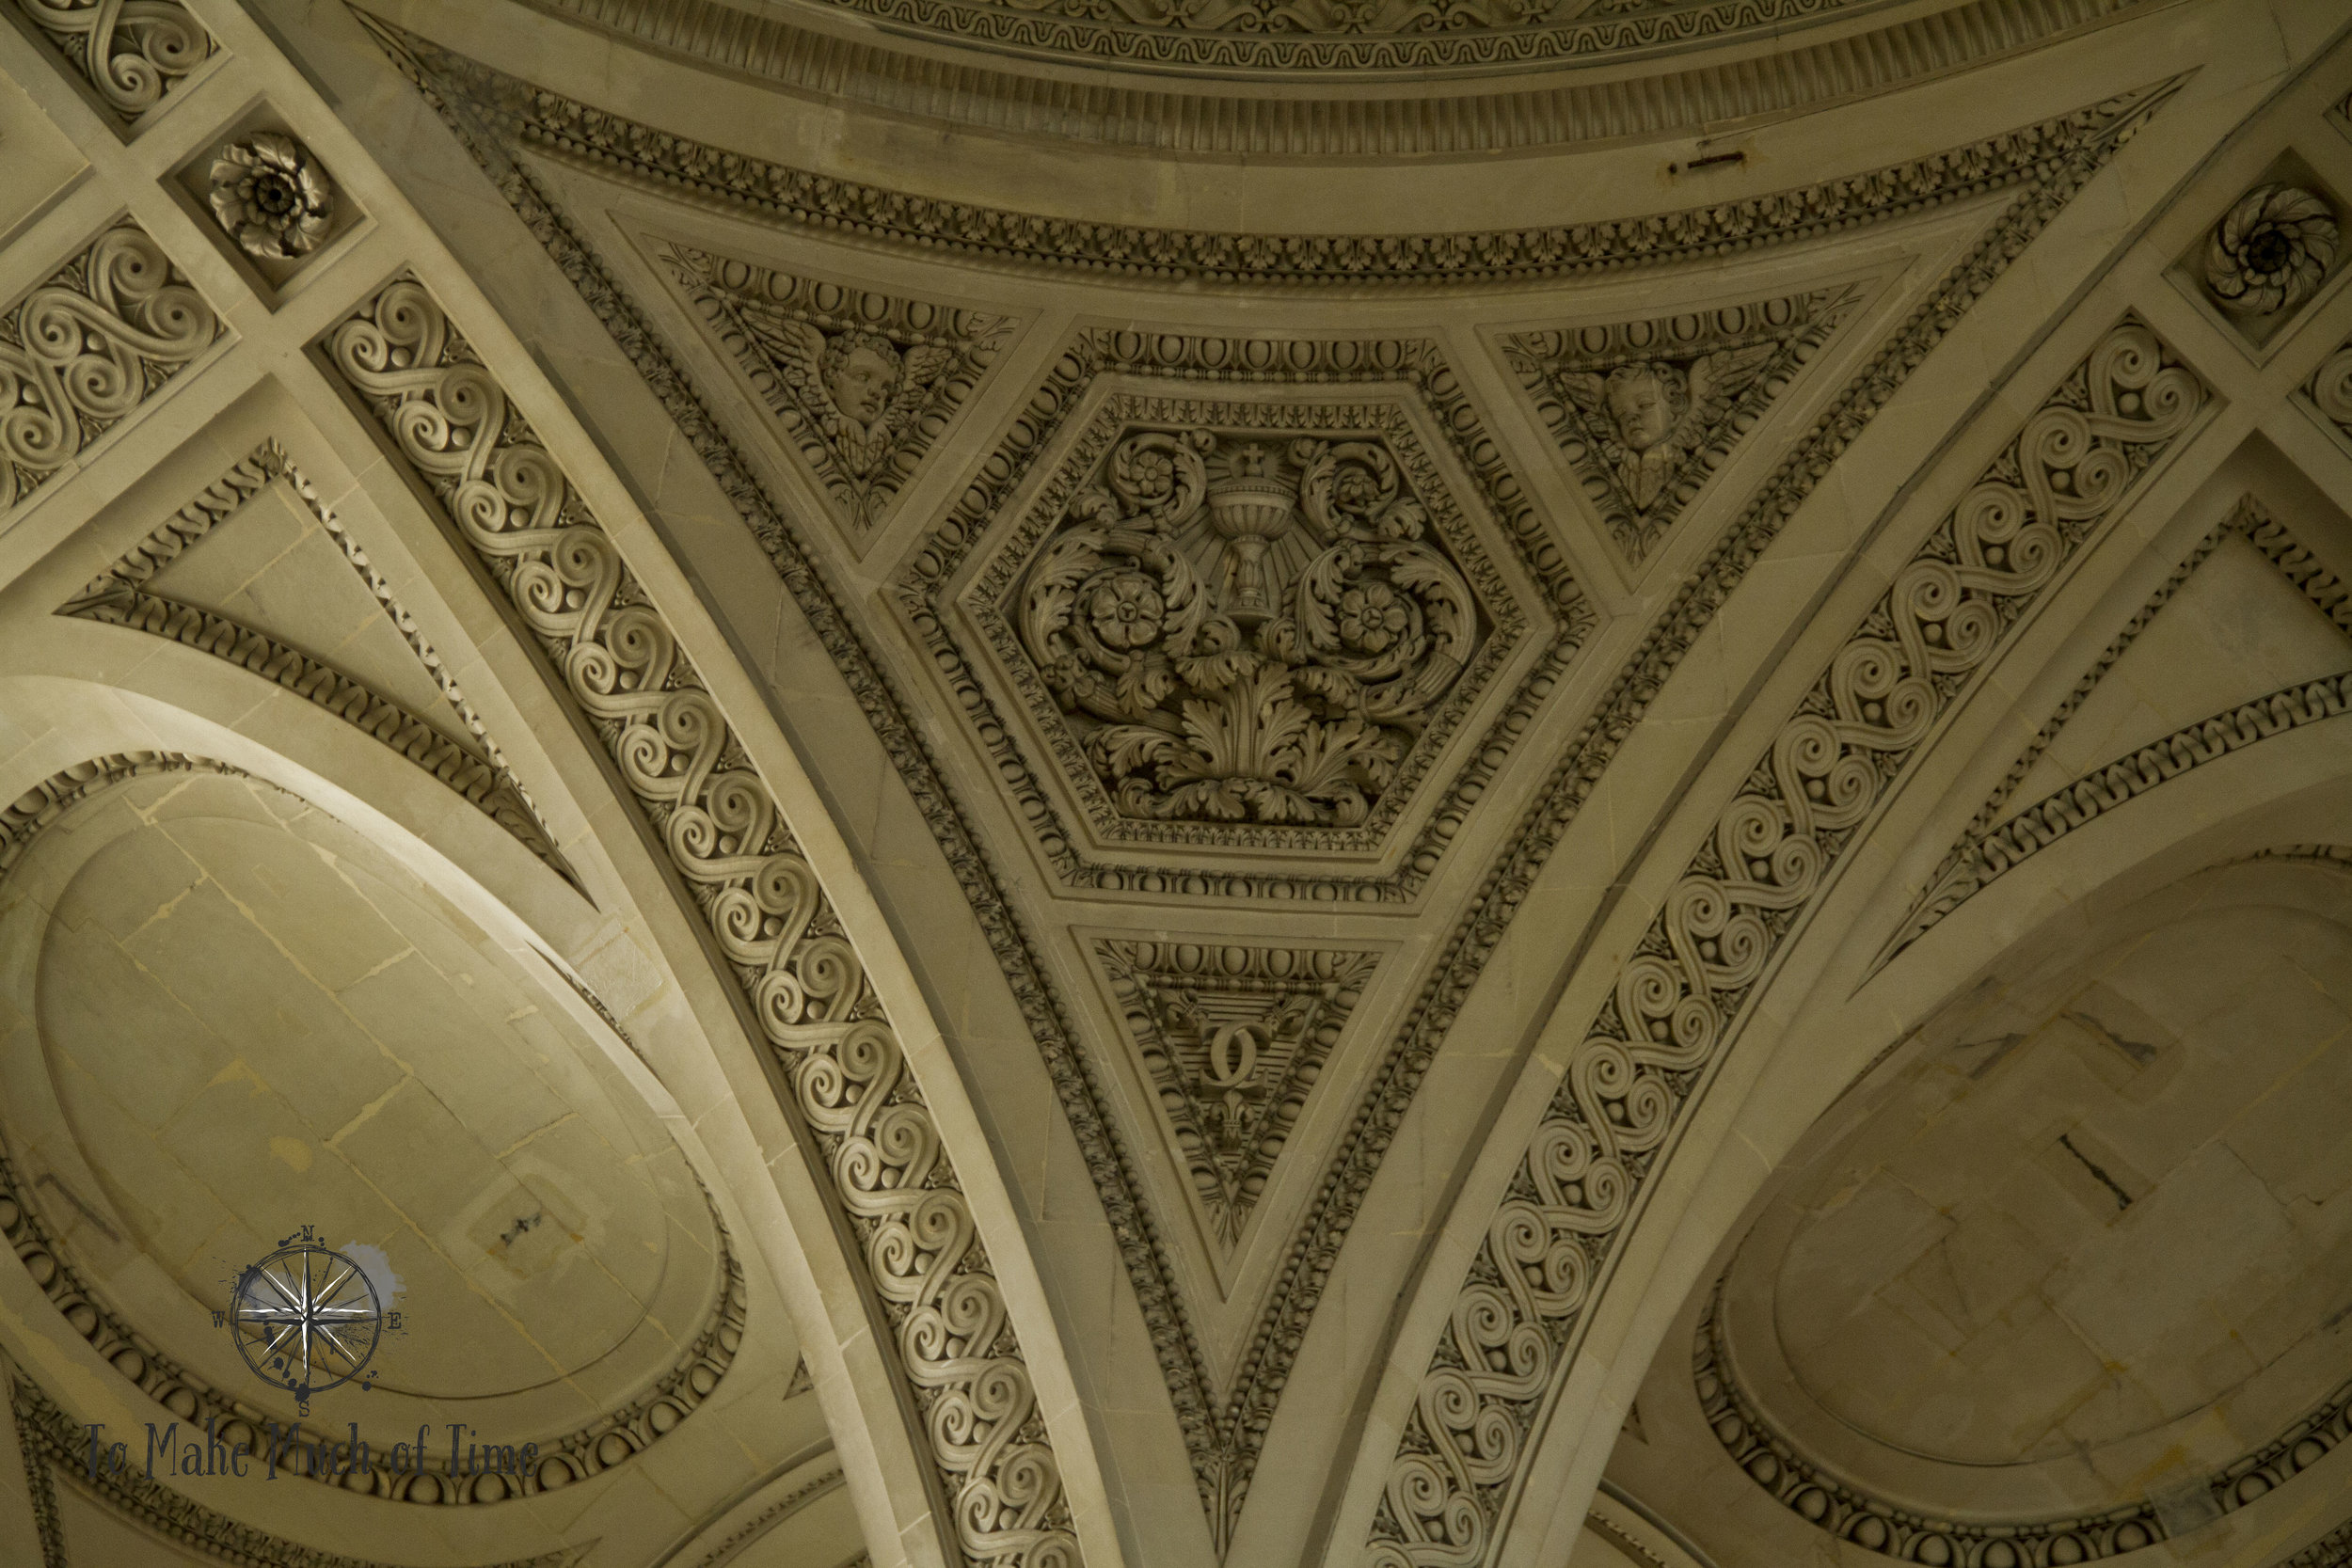 The detail on the ceiling adds to the grandiose and inspiring feel of the Pantheon.